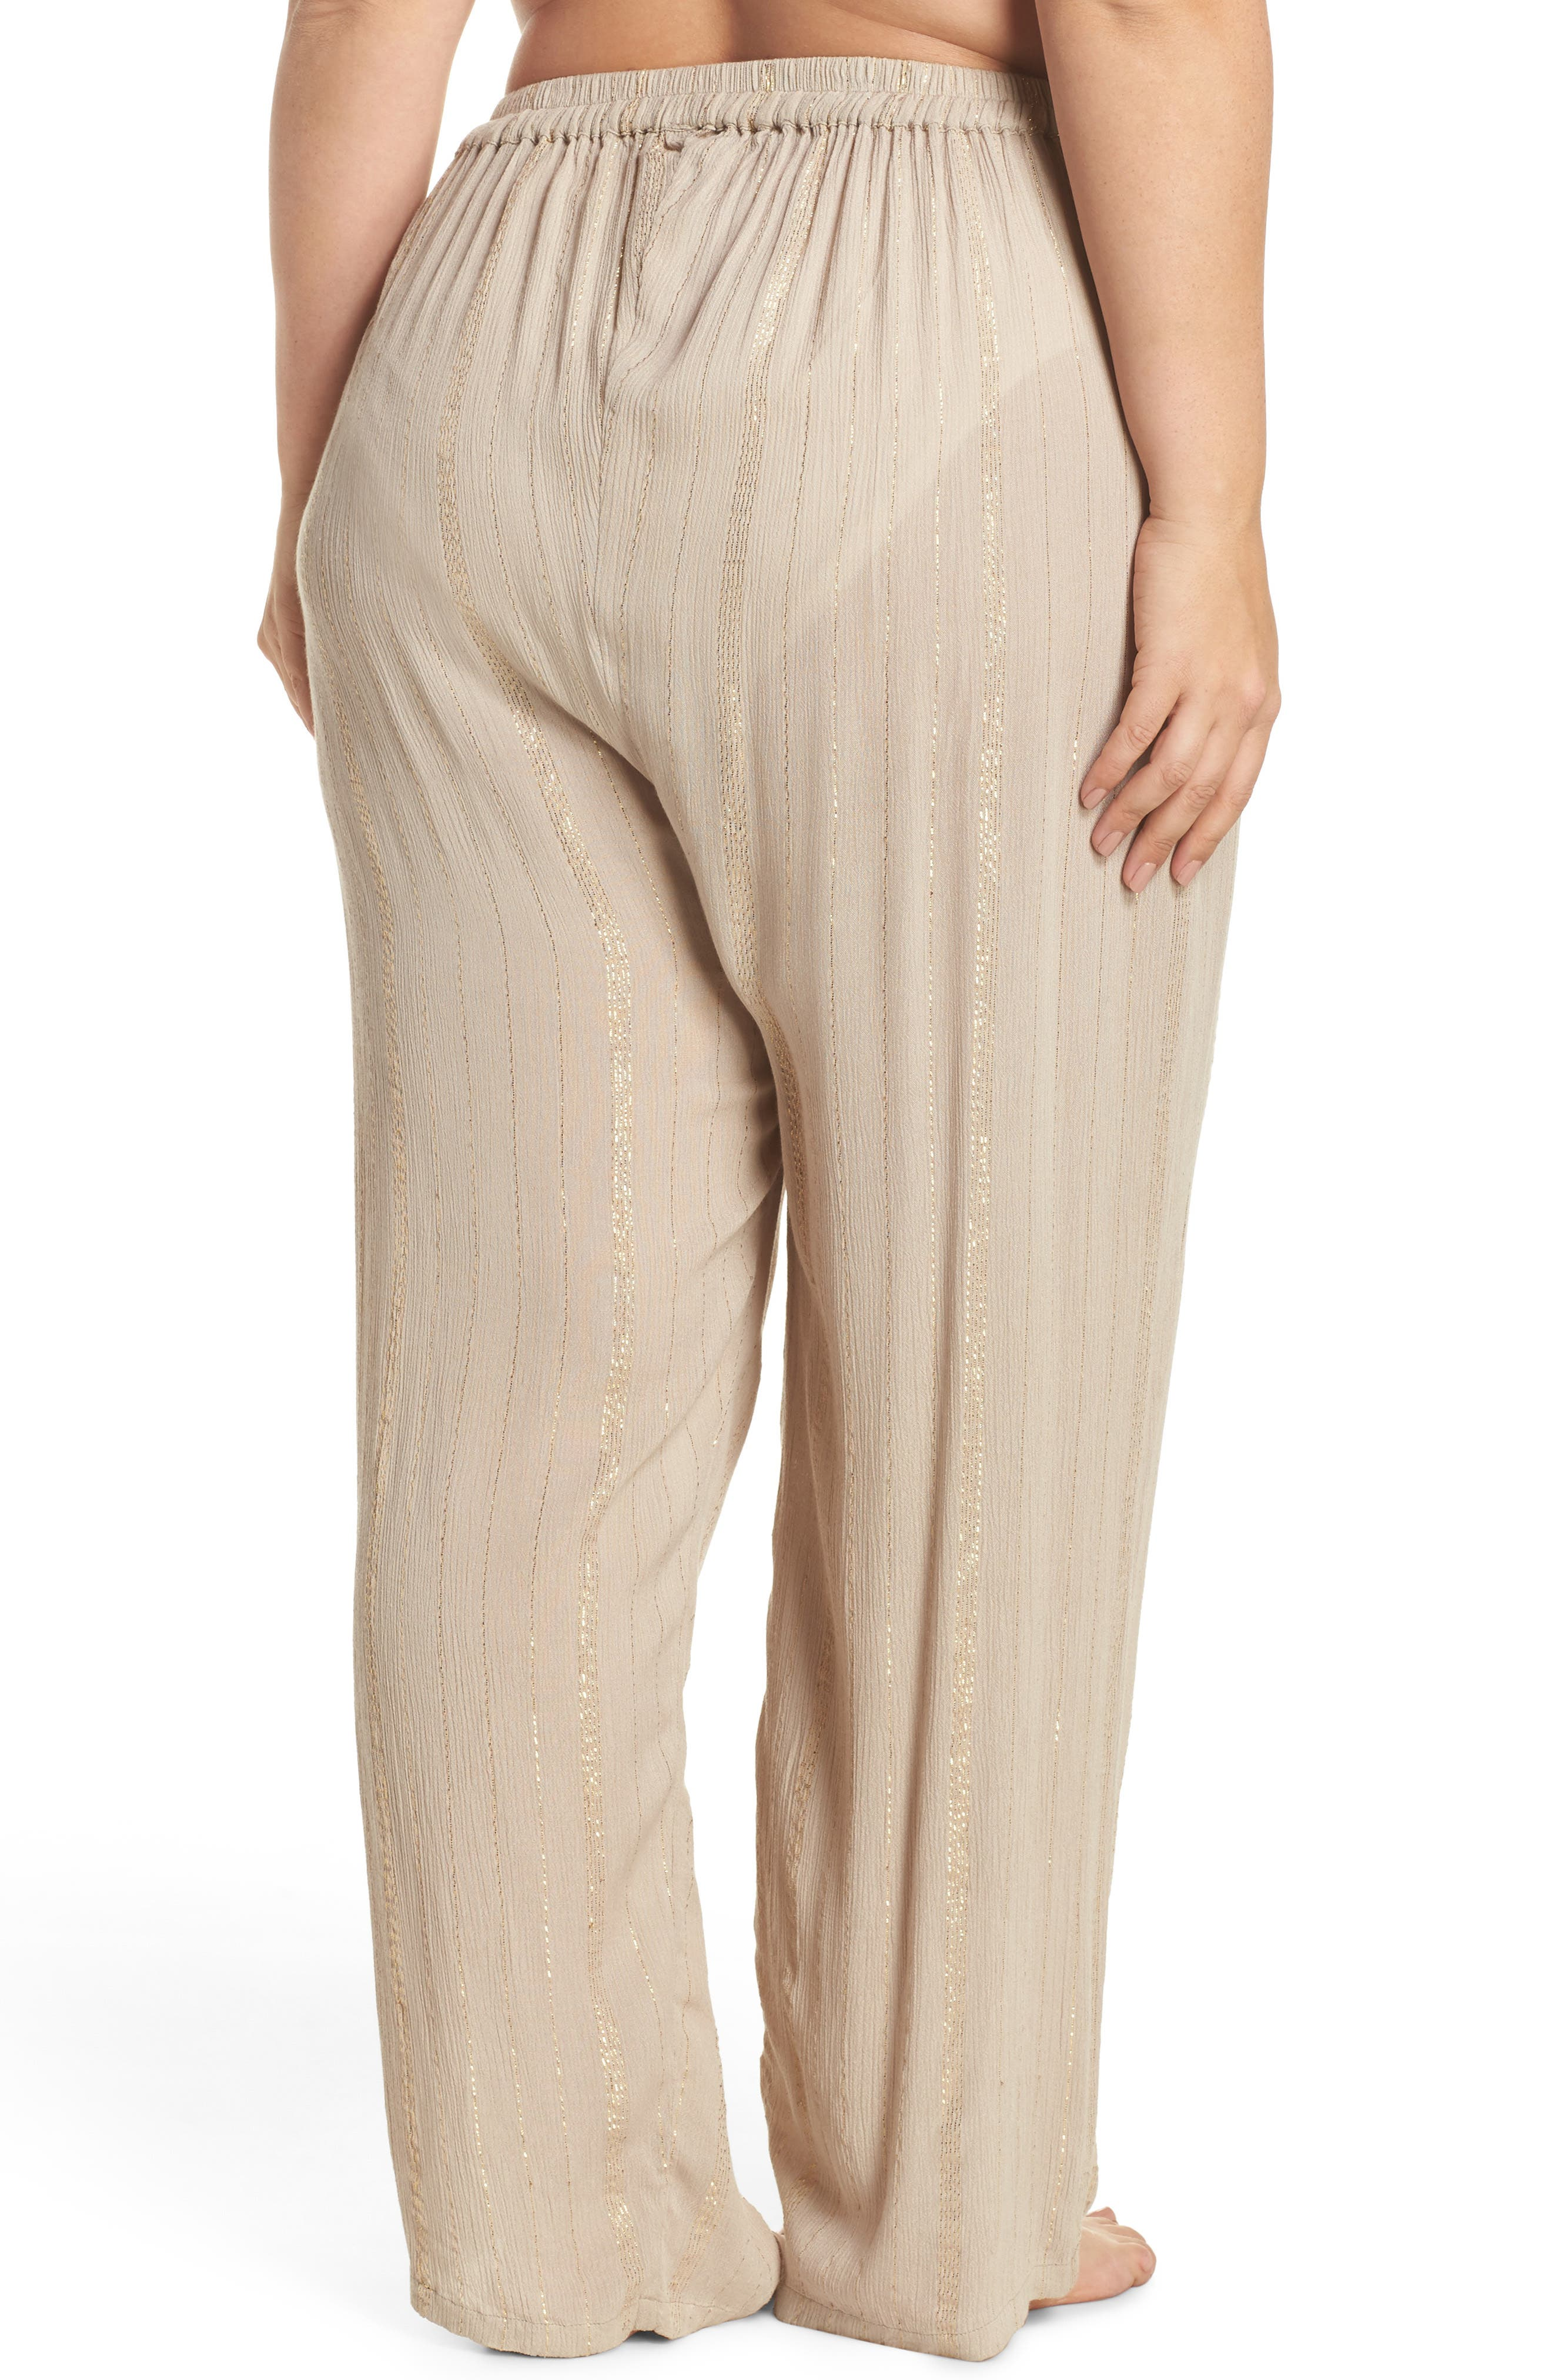 Iris Cover-Up Pants,                             Alternate thumbnail 2, color,                             Taupe/ Gold